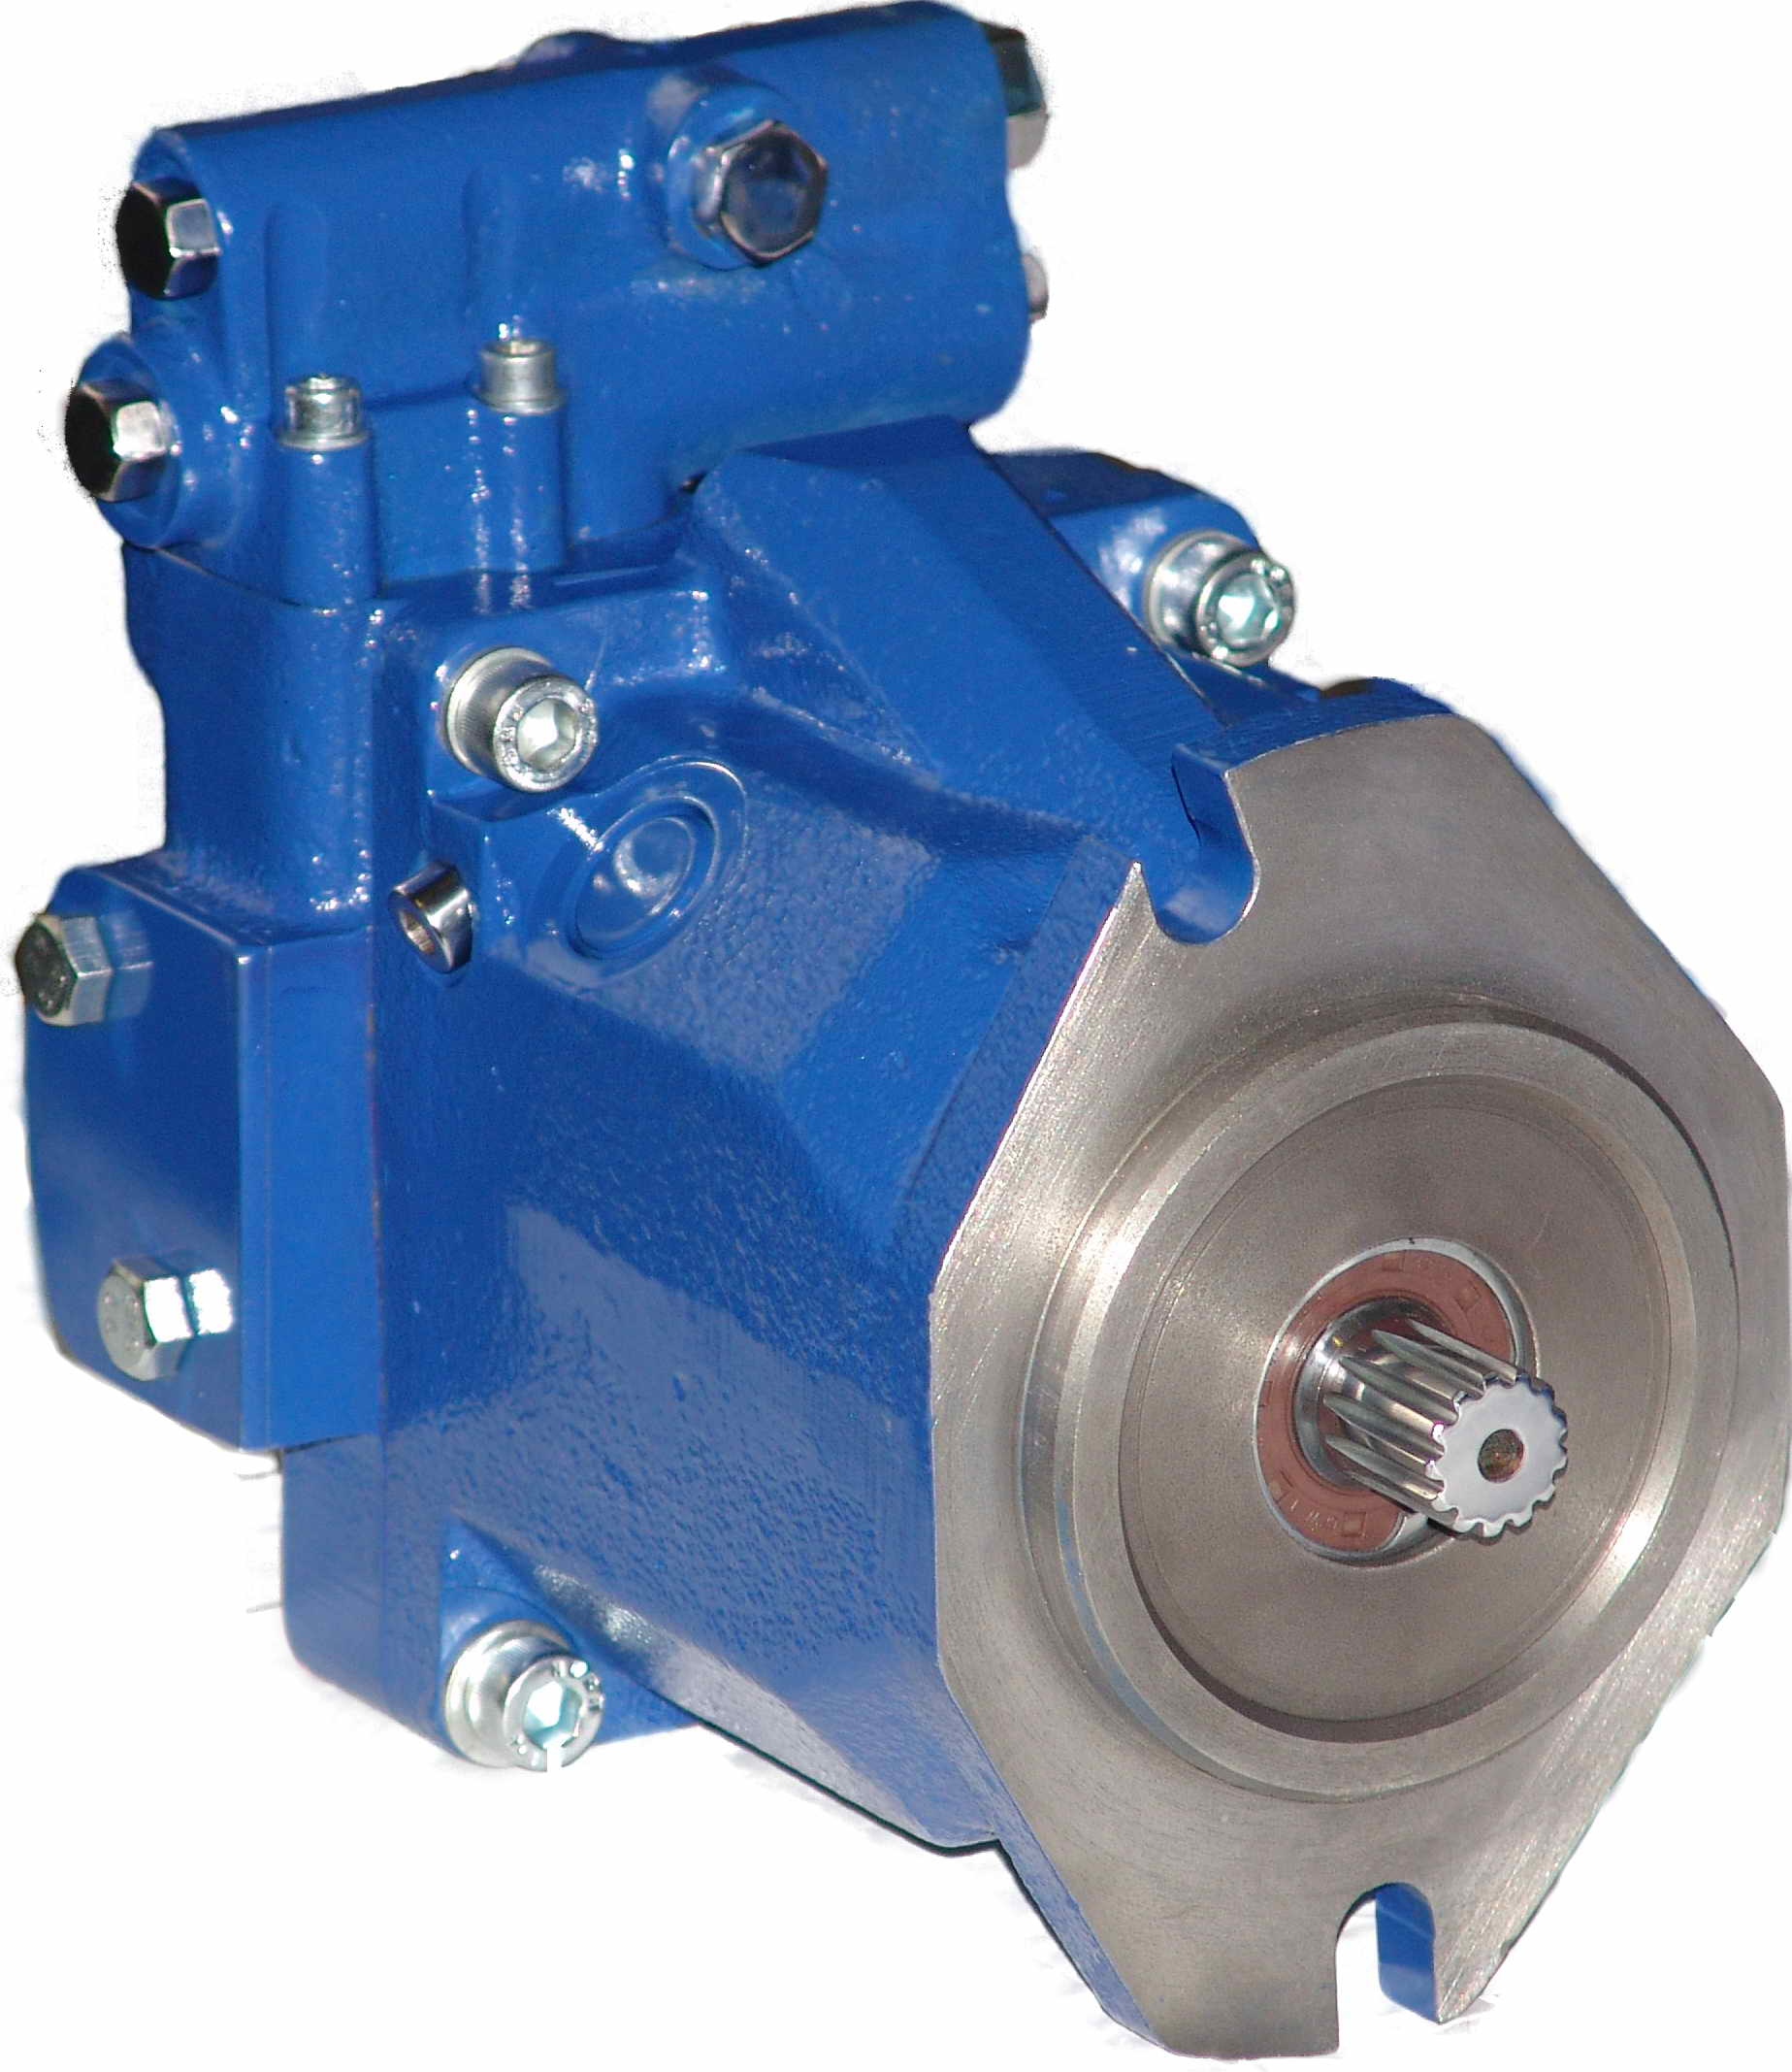 LS Series Ukraine https://www.hydrosila.com/en/products/piston-engines/variable-axial-piston-pumps.html